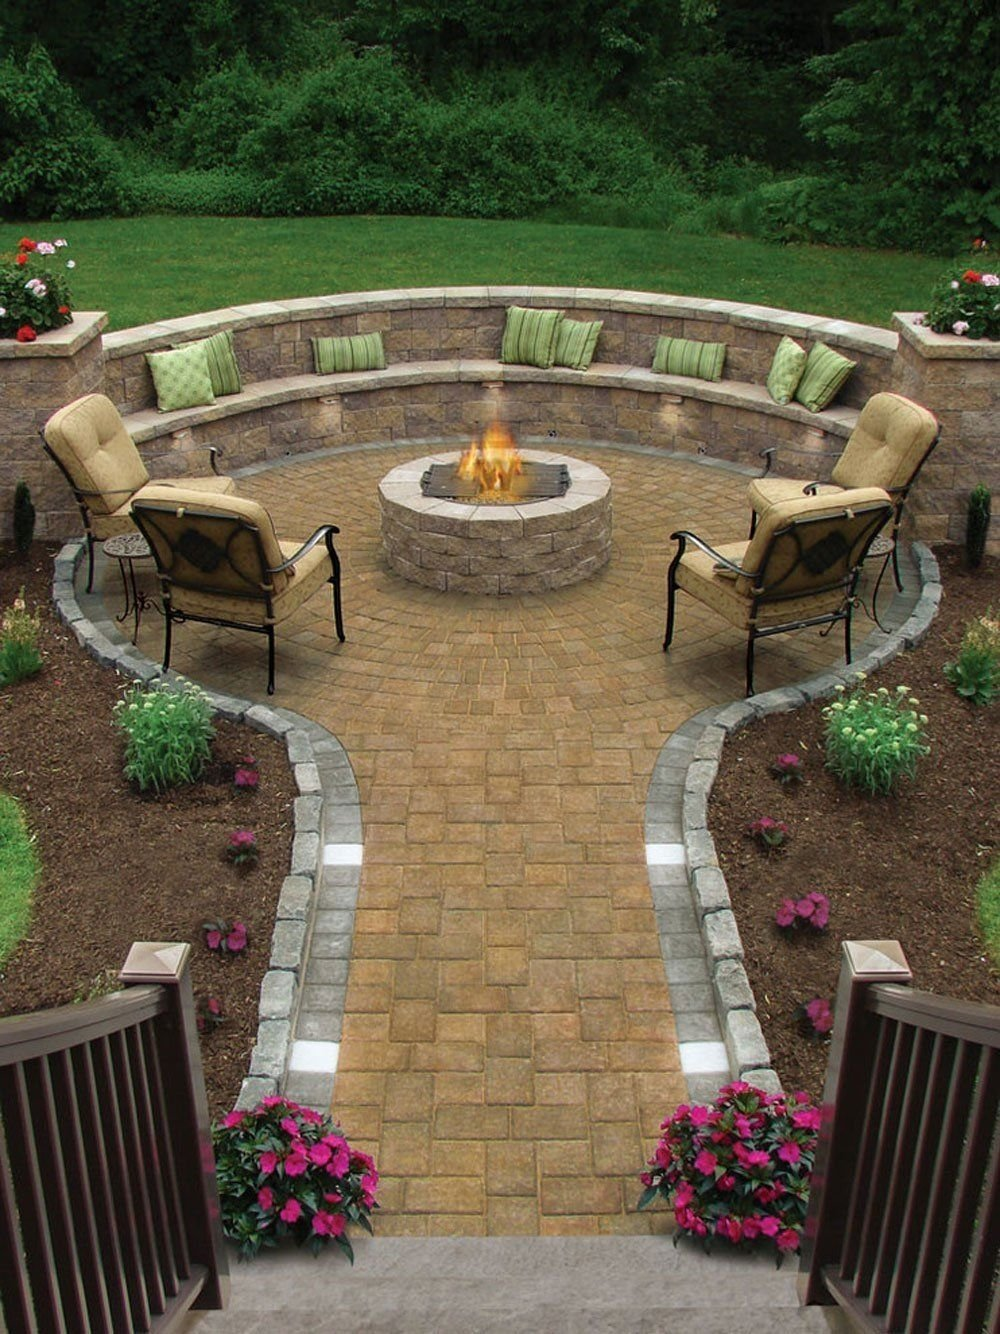 10 Perfect Patio Design Ideas With Fire Pits 17 of the most amazing seating area around the fire pit ever 2021